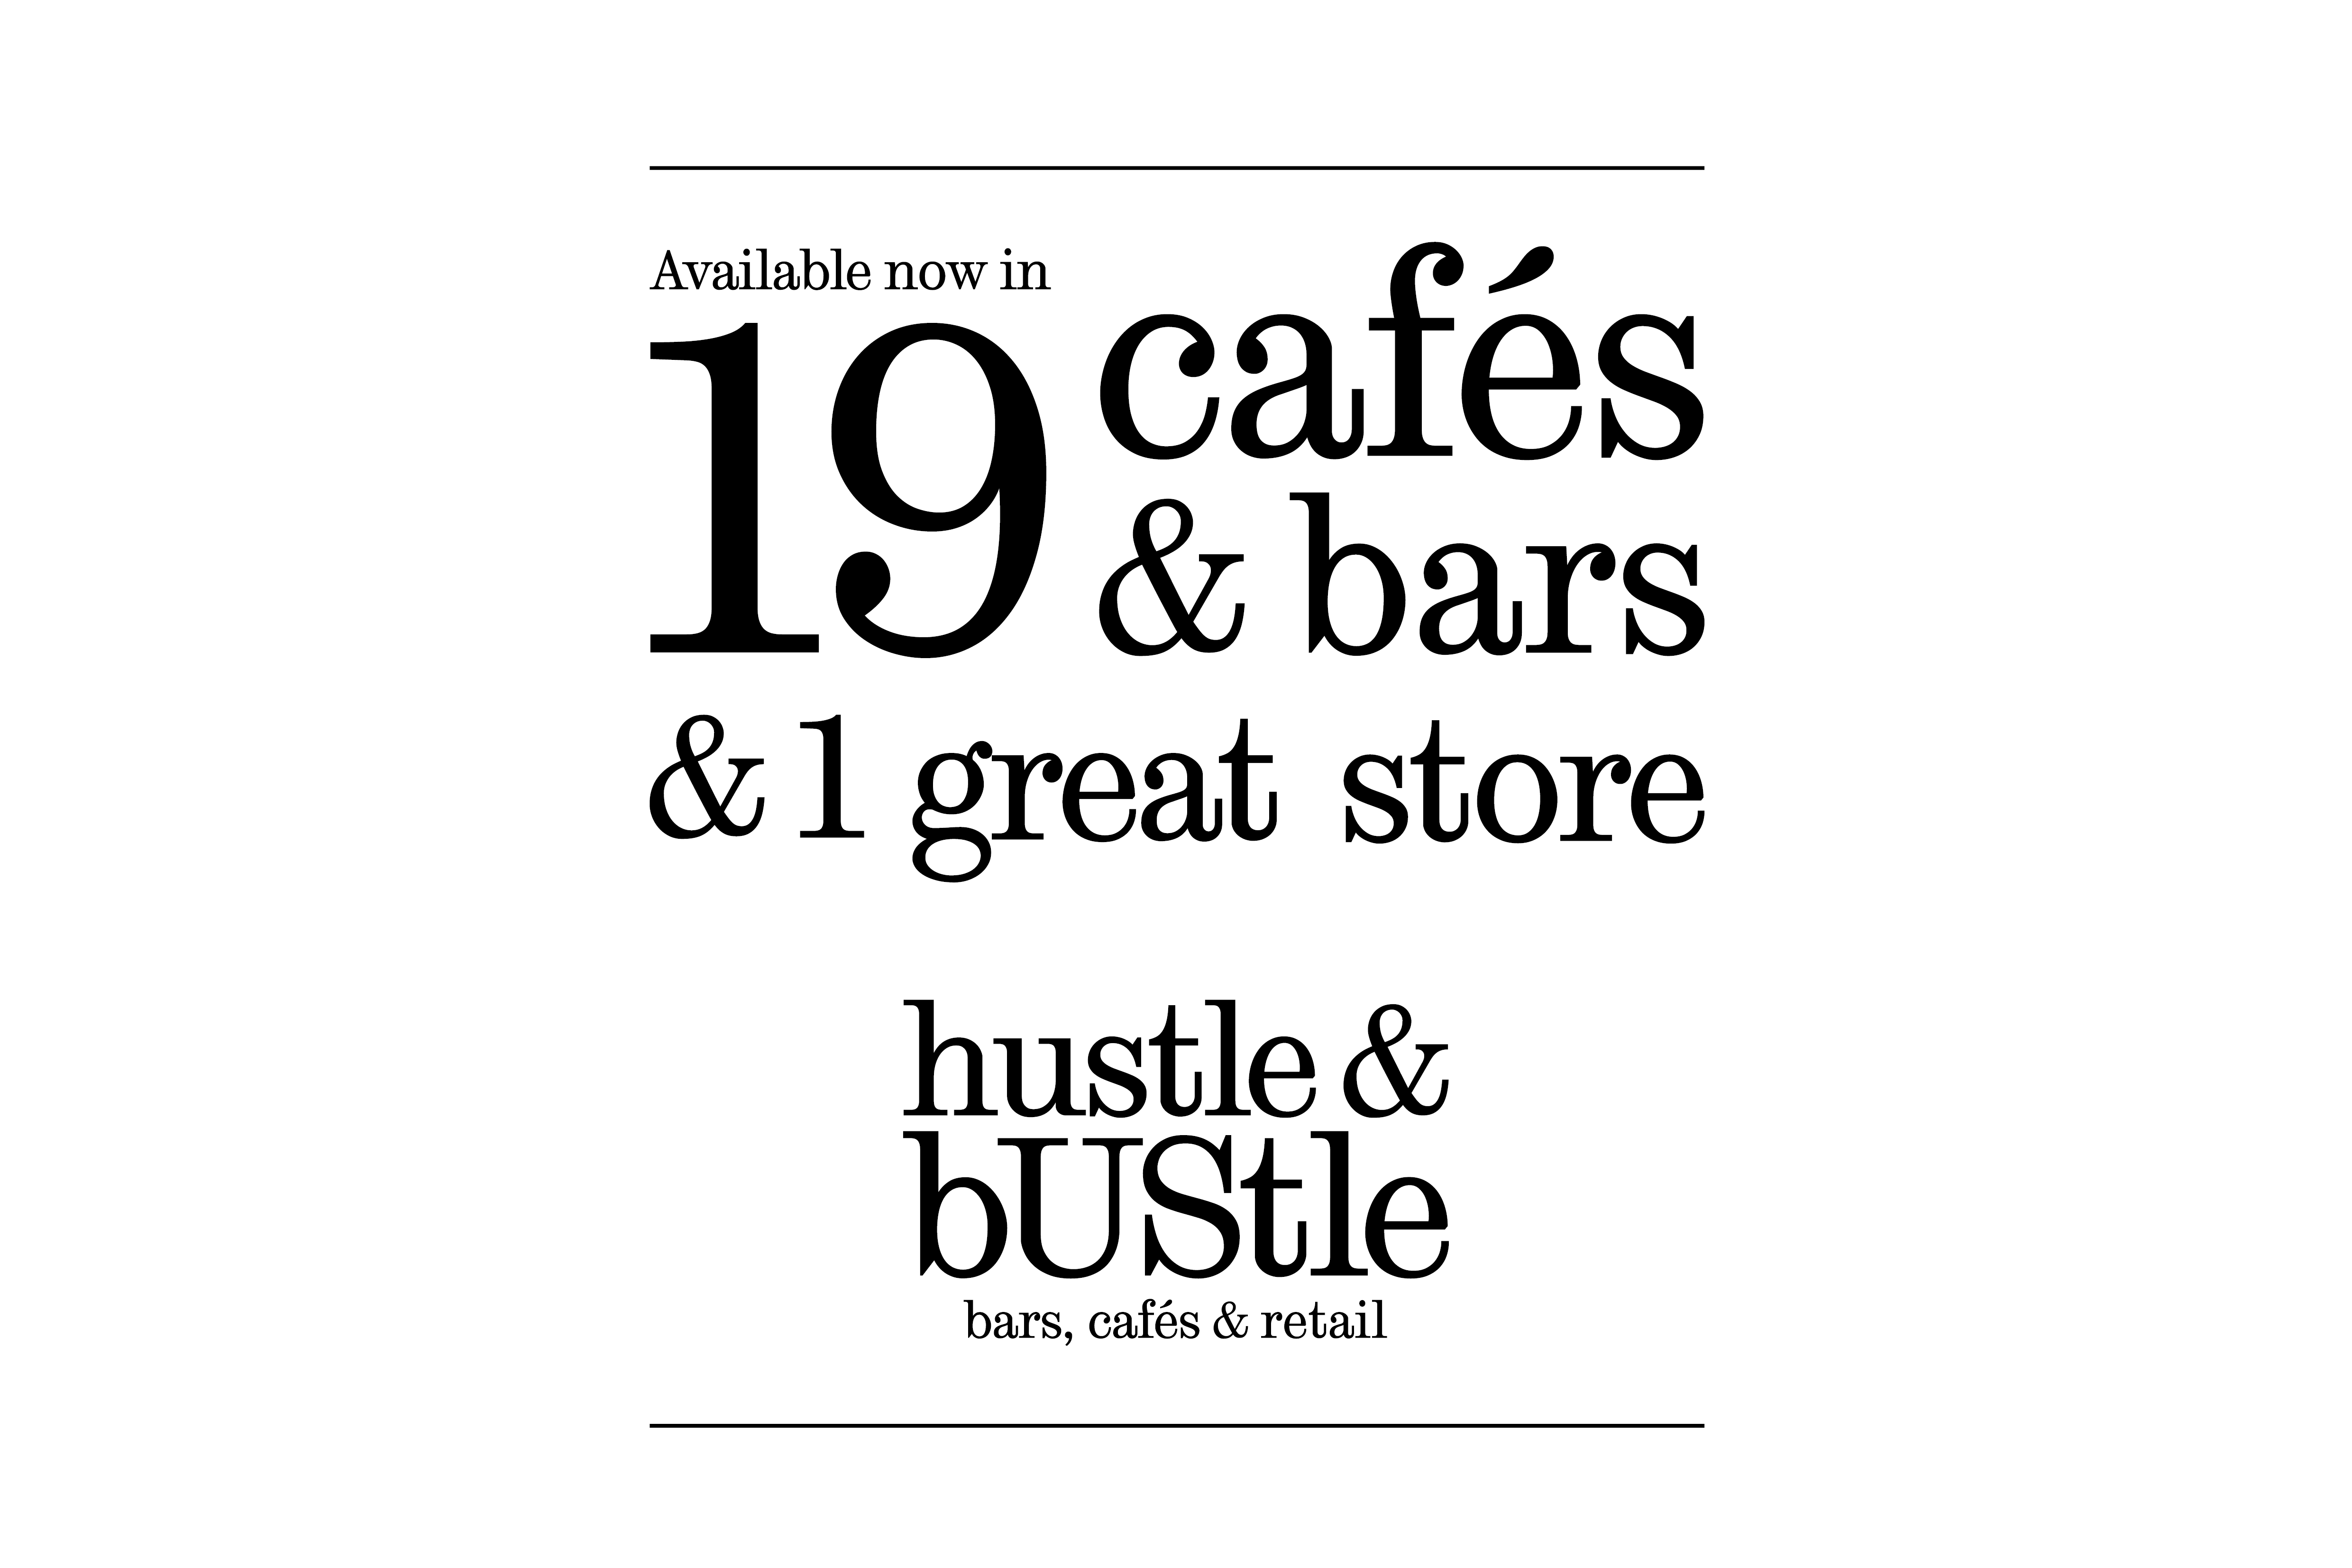 hustle & bUstle cafes & bars in Sheffield